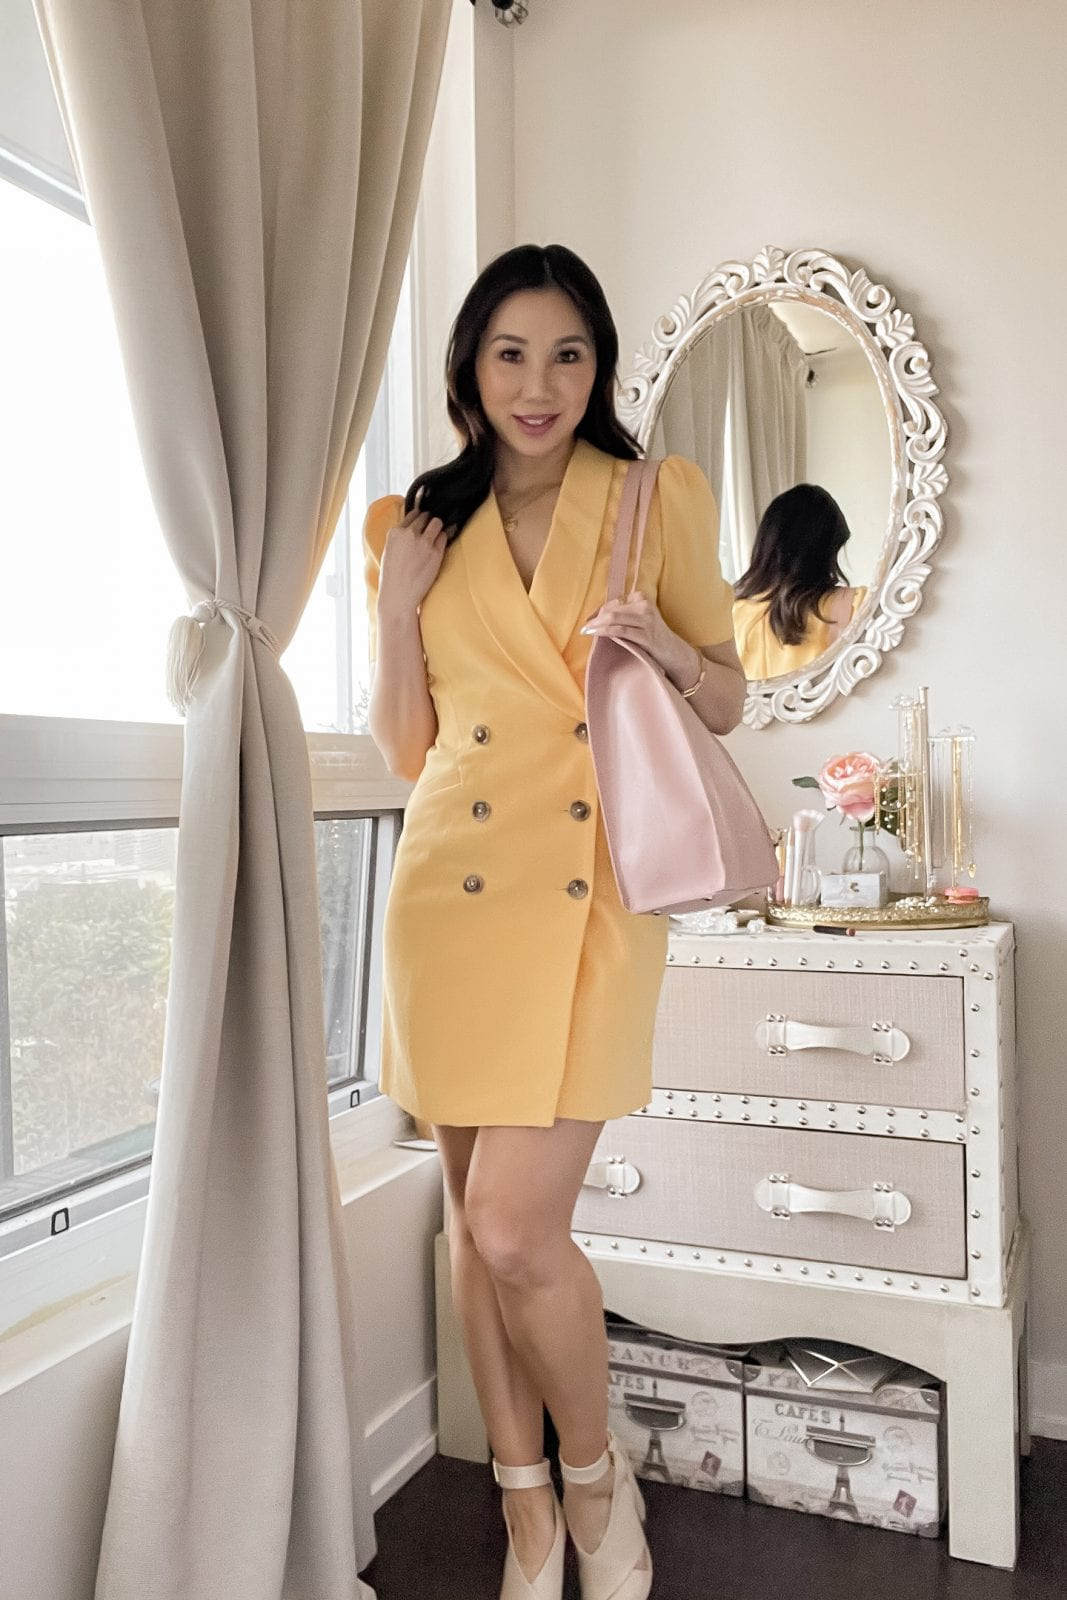 Reinvent your workwear look with this sleek blazer dress and bring a pop of color to your office wardrobe. Check out yesmissy.com for outfit ideas!